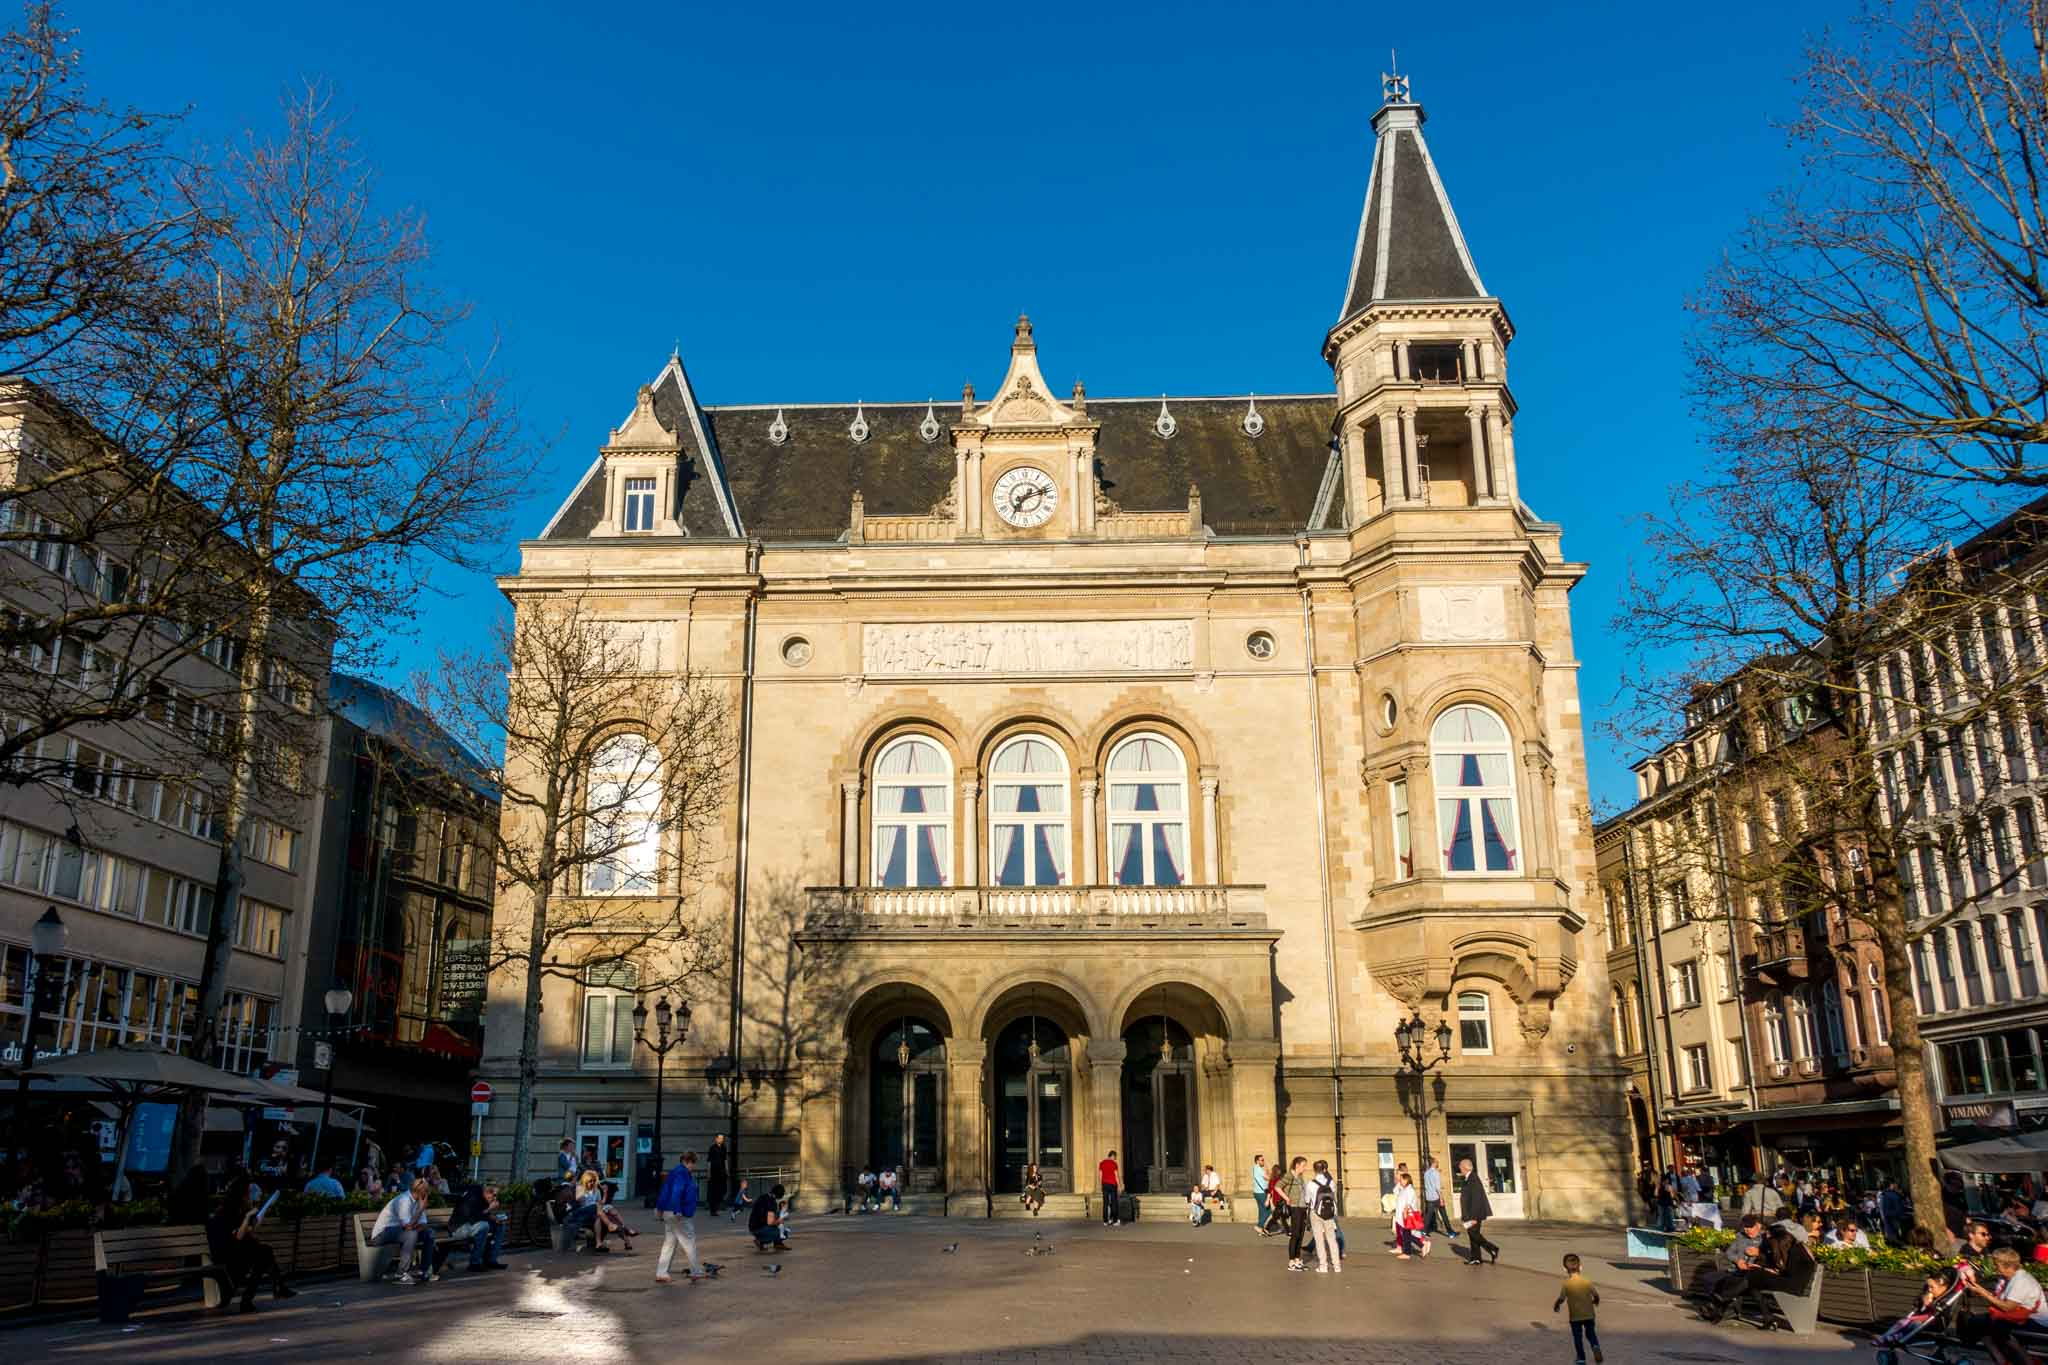 Cercle Cite in the center of Luxembourg City hosts special exhibits. A visit here is one of the things to do in Luxembourg.